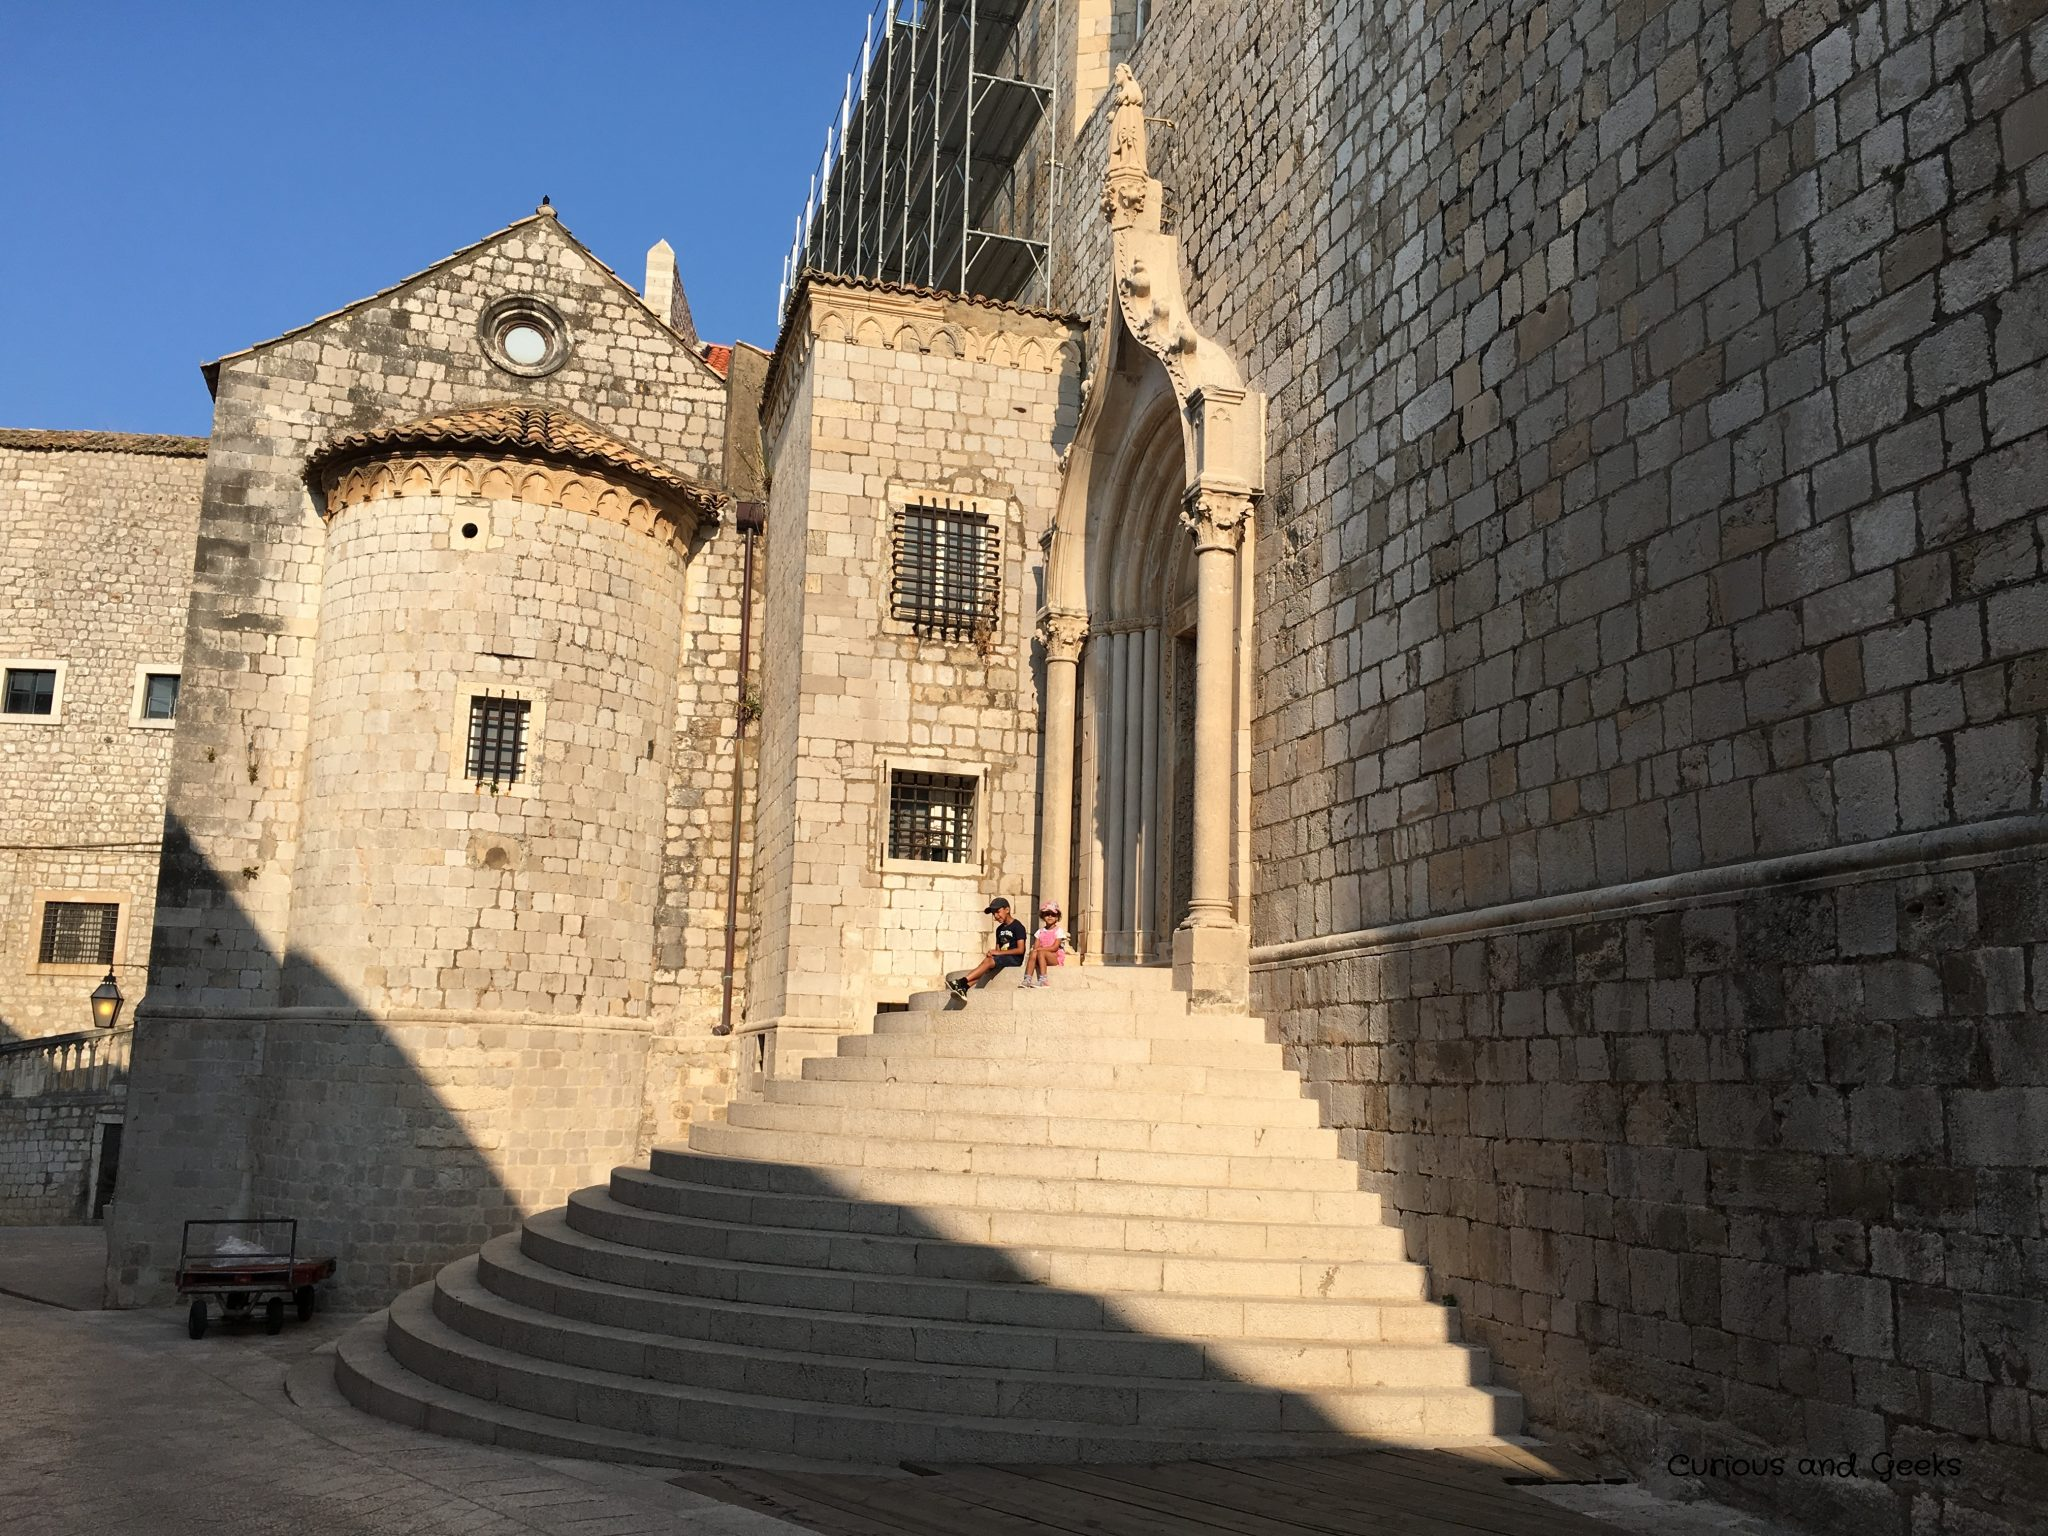 6. Dominican Monastery - Game of Thrones filming locations in Dubrovnik